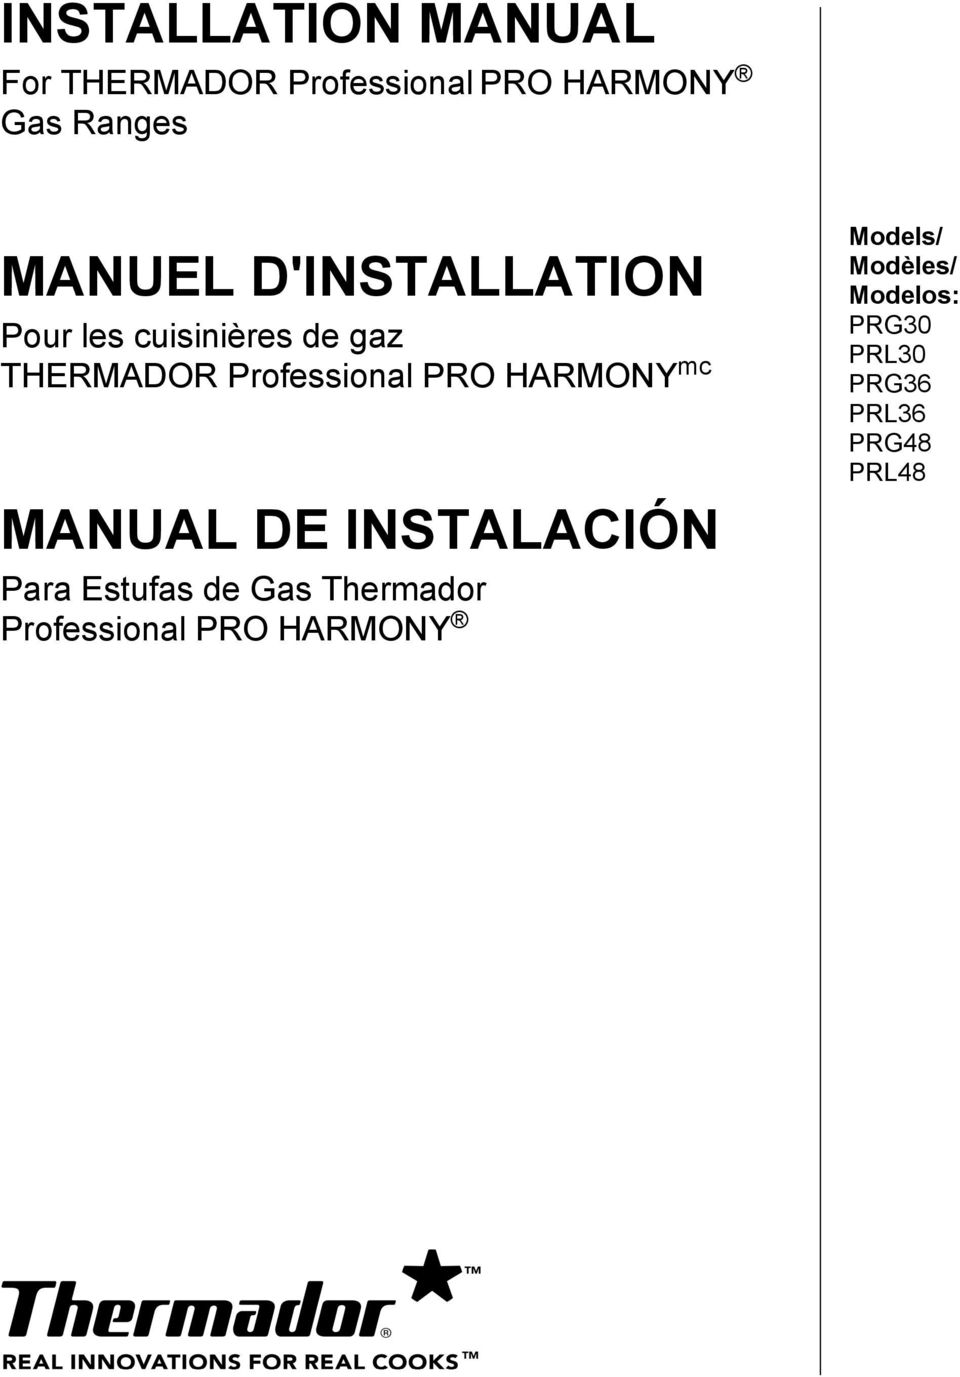 INSTALLATION MANUAL For THERMADOR Professional PRO HARMONY Gas ... on